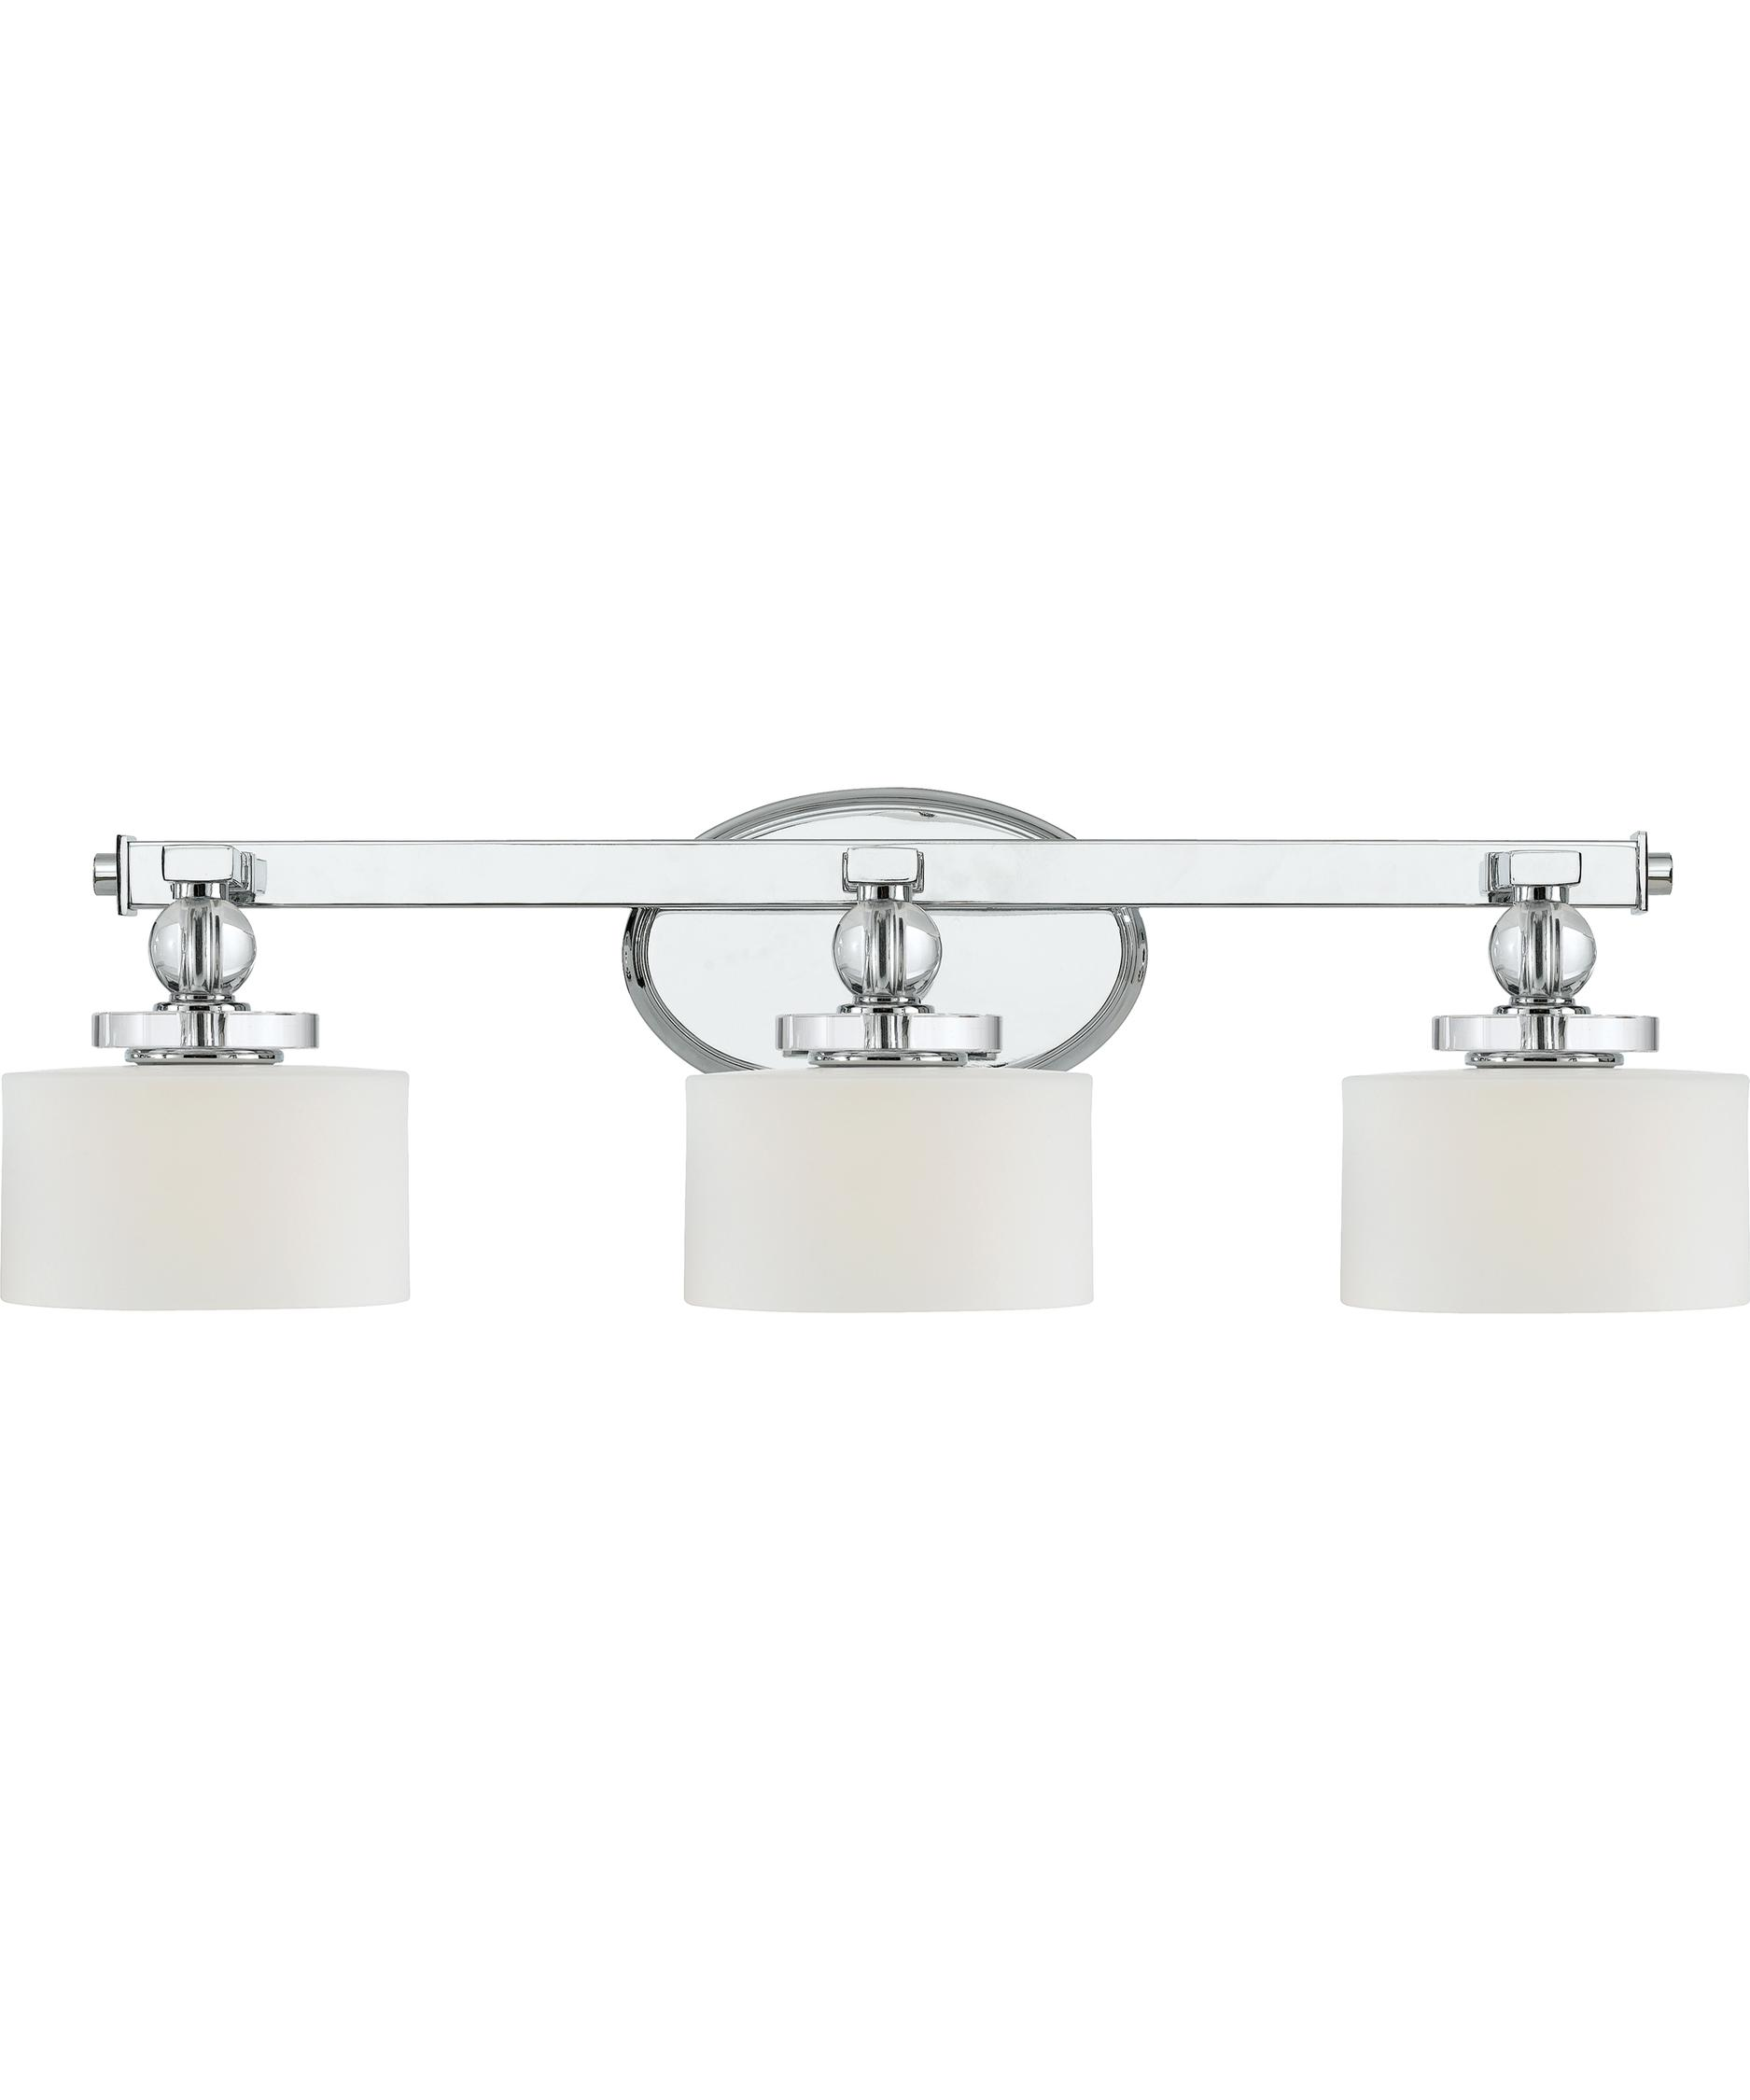 Quoizel DW8603 Downtown 25 Inch Wide Bath Vanity Light